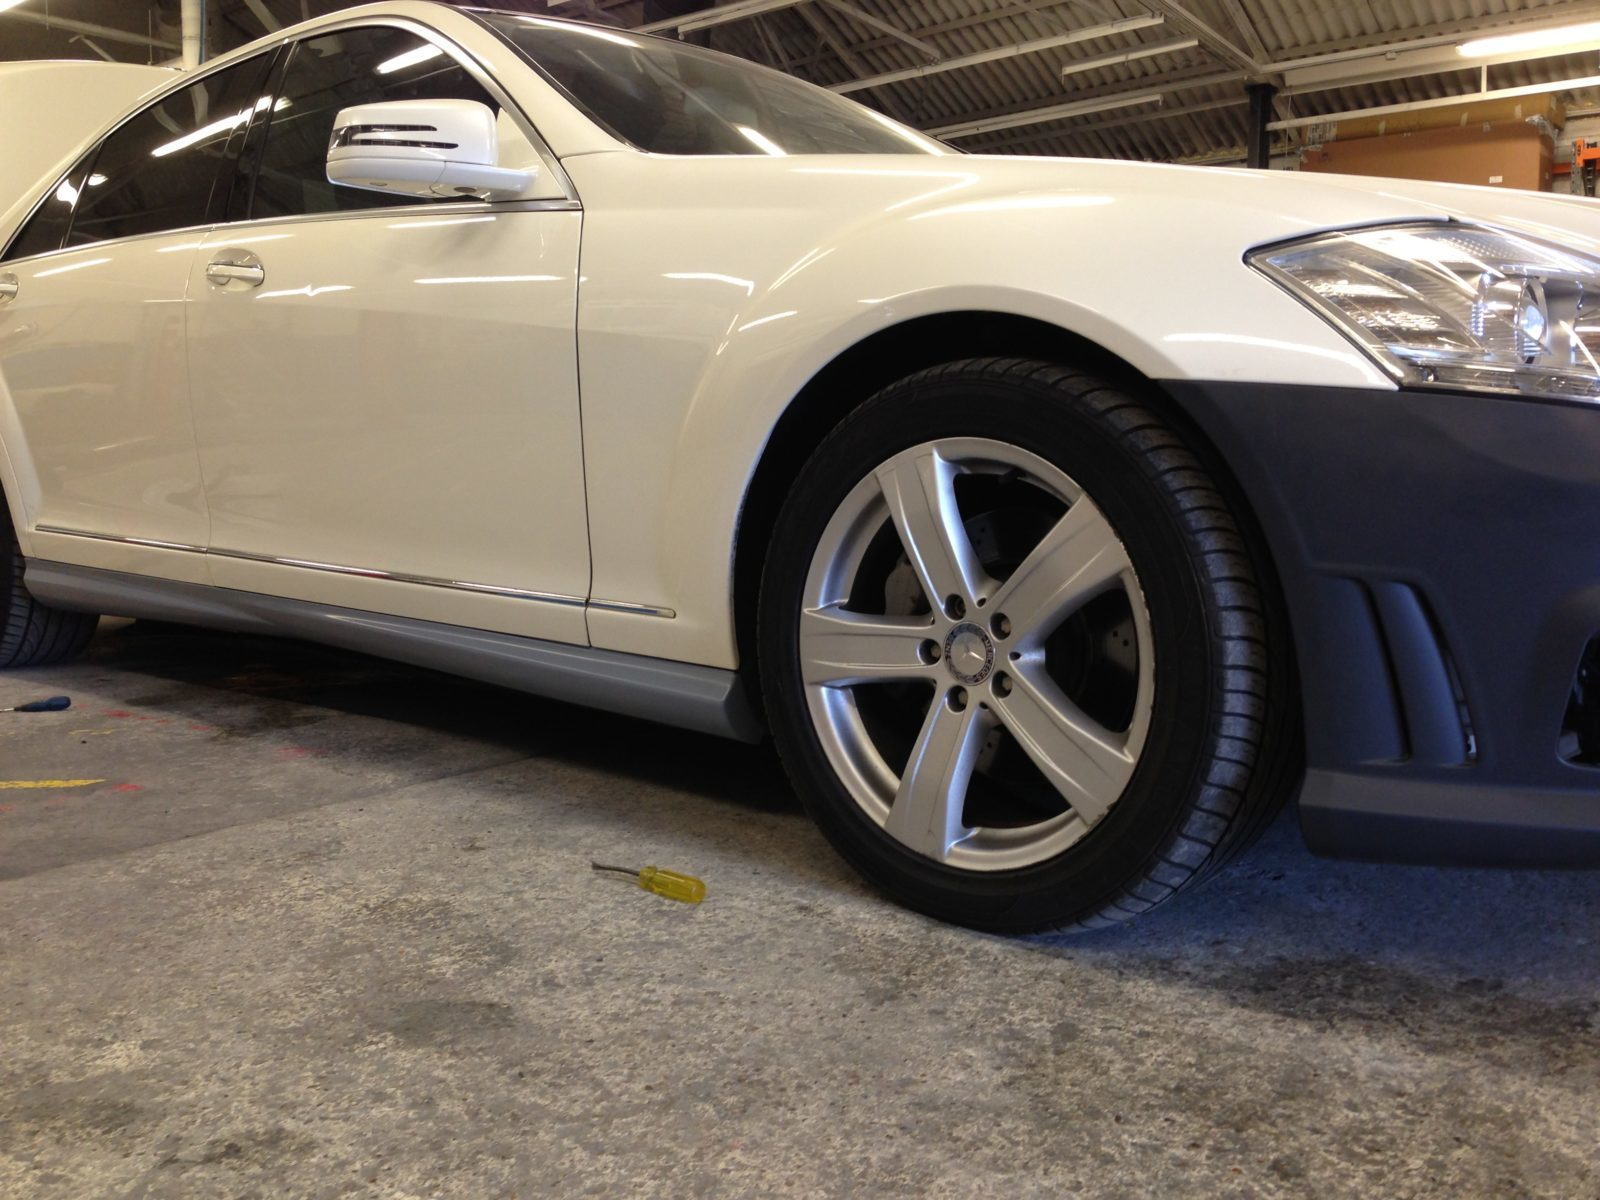 Mercedes SL65 AMG Black Series Bodykit 2013